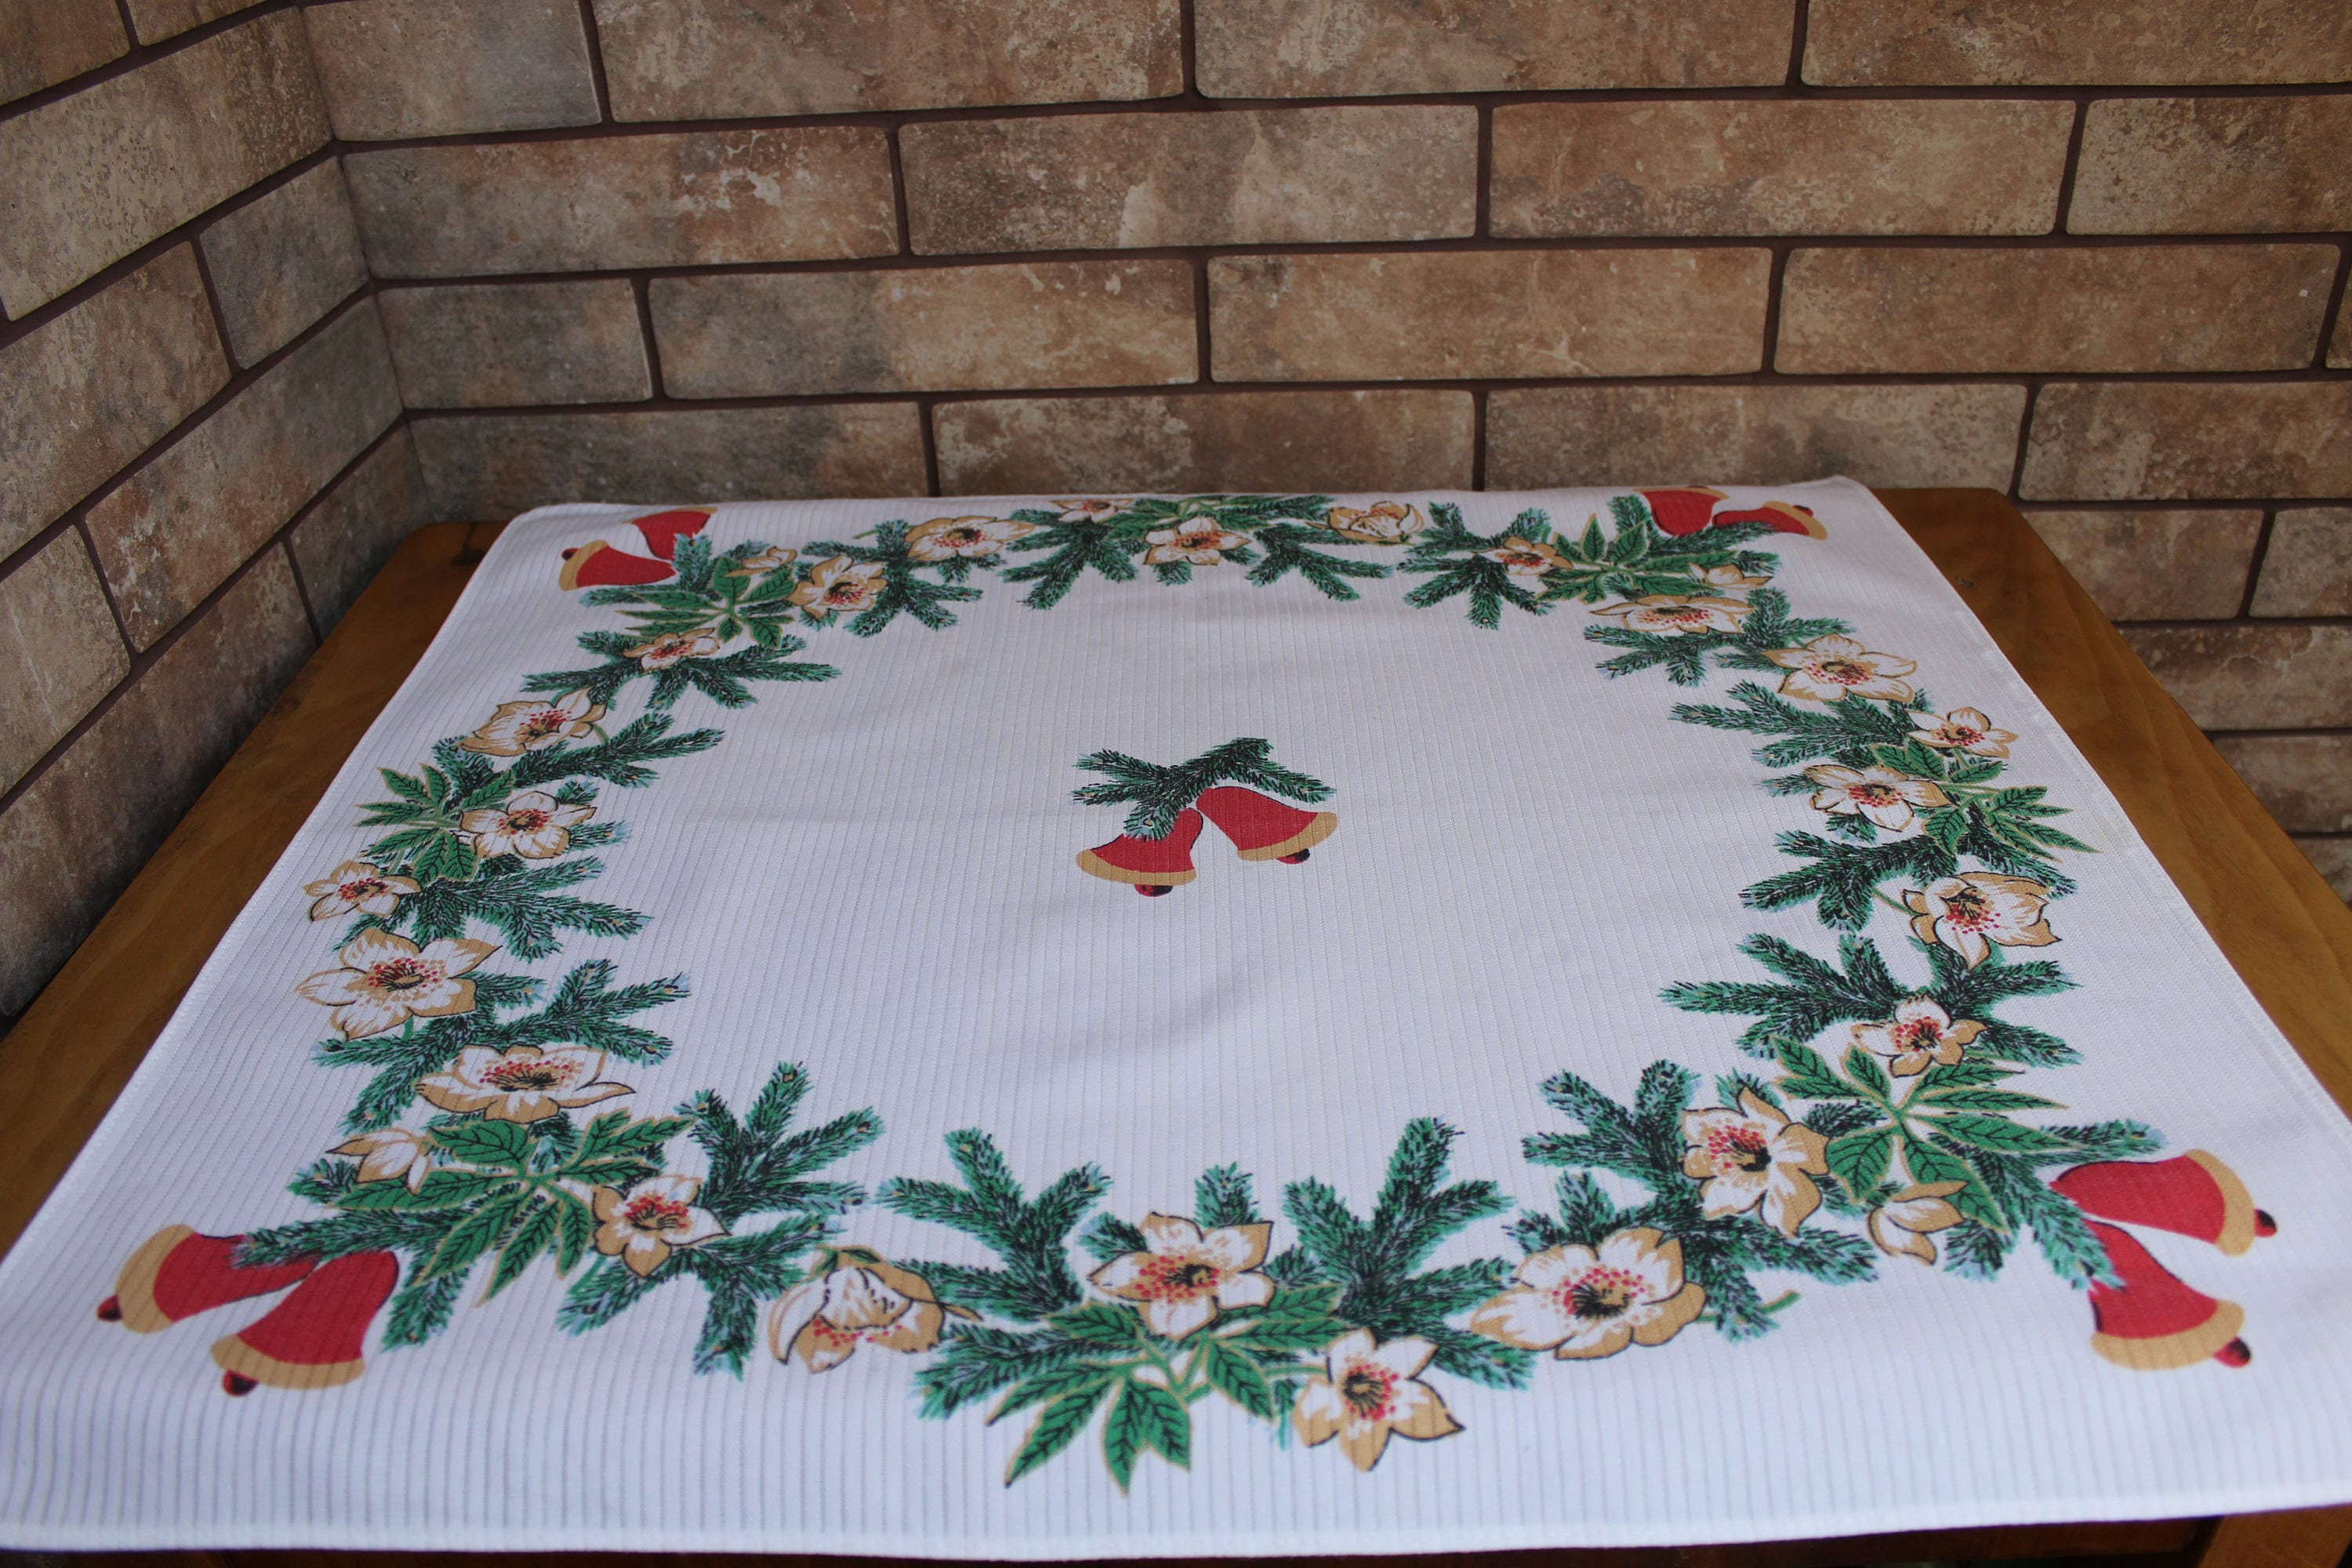 Christmas Tablecloths Australia Vintage Christmas Tablecloth Christmas Tree Bumps Holly Pine Tablecloth Xmas Holidays Holidays Table Linens Christmas Bells White